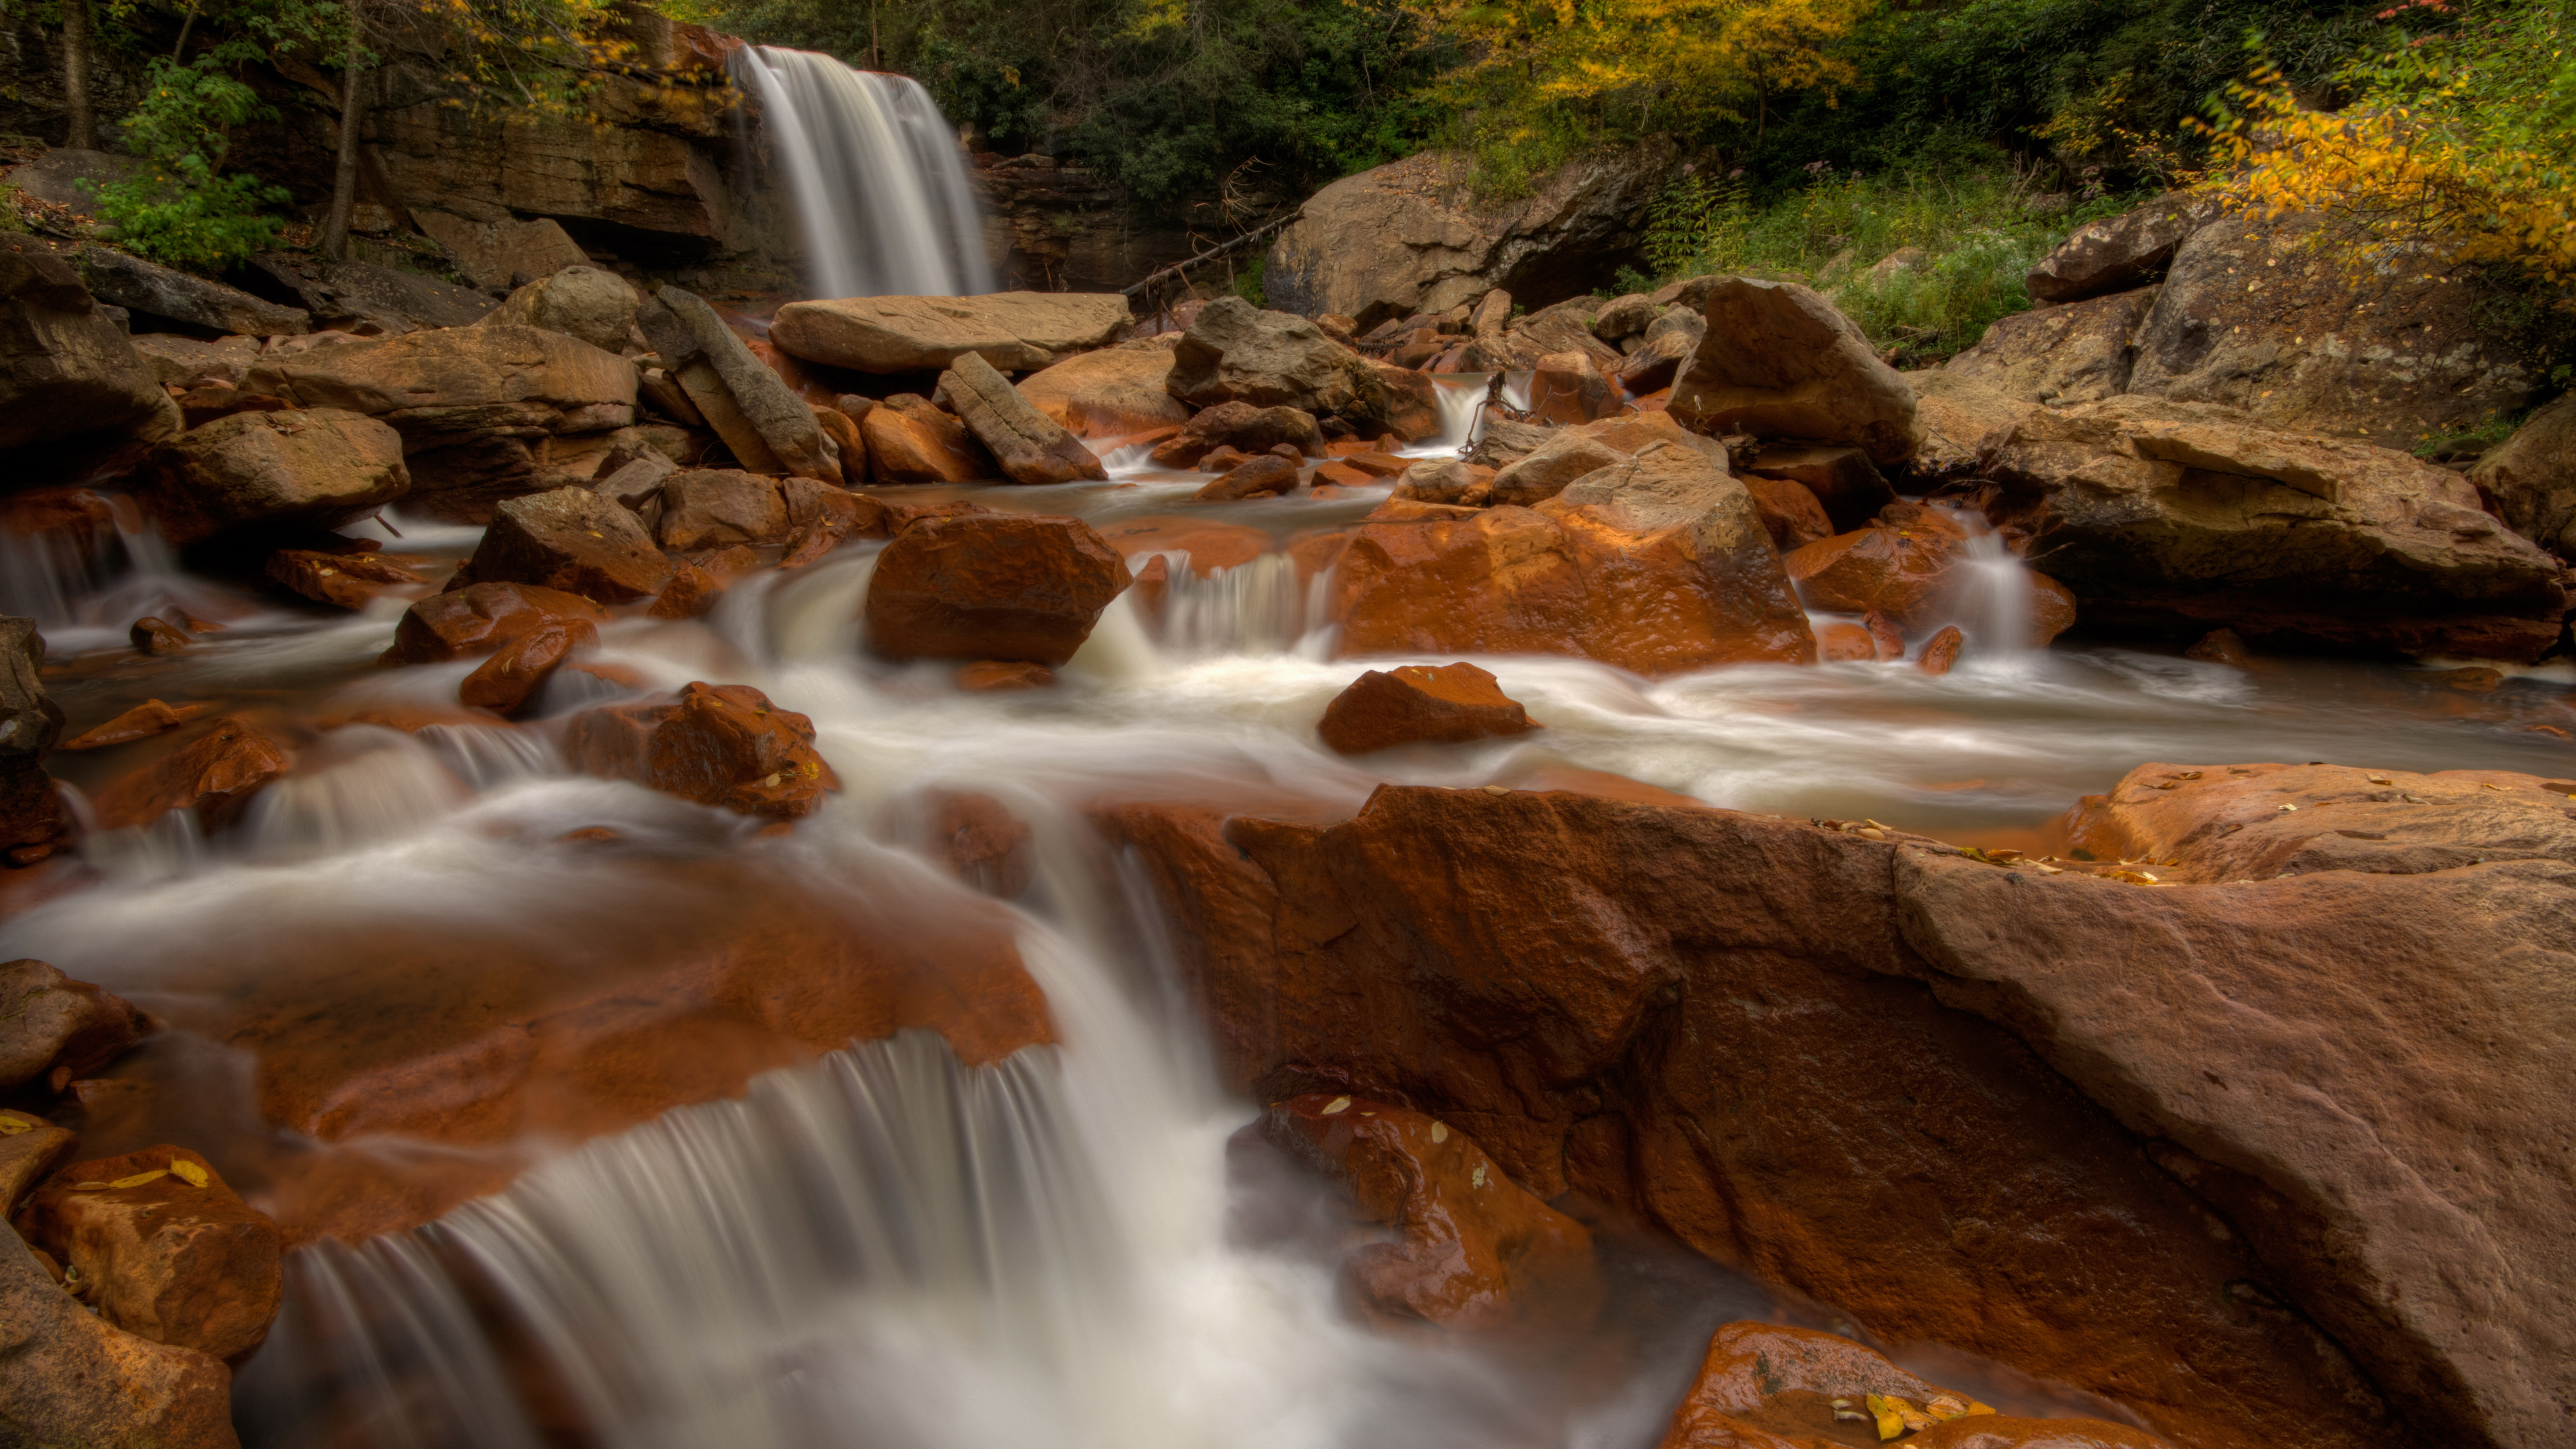 ultra hd wallpapers 8k 7680x4320 nature,water resources,body of water,natural landscape,waterfall,nature